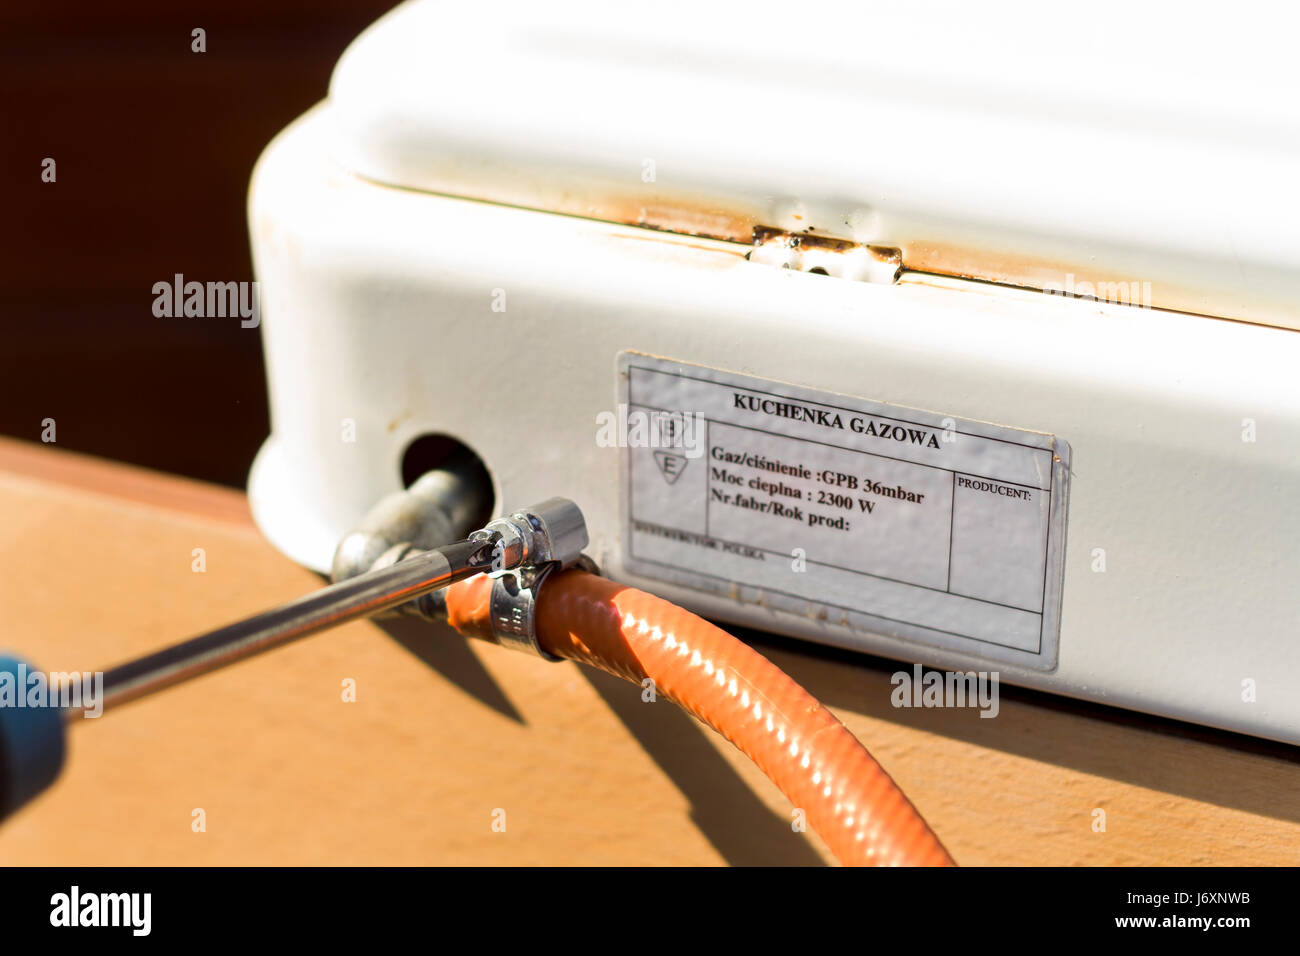 Install the flexible hose to the gas stove using a clamping band. - Stock Image